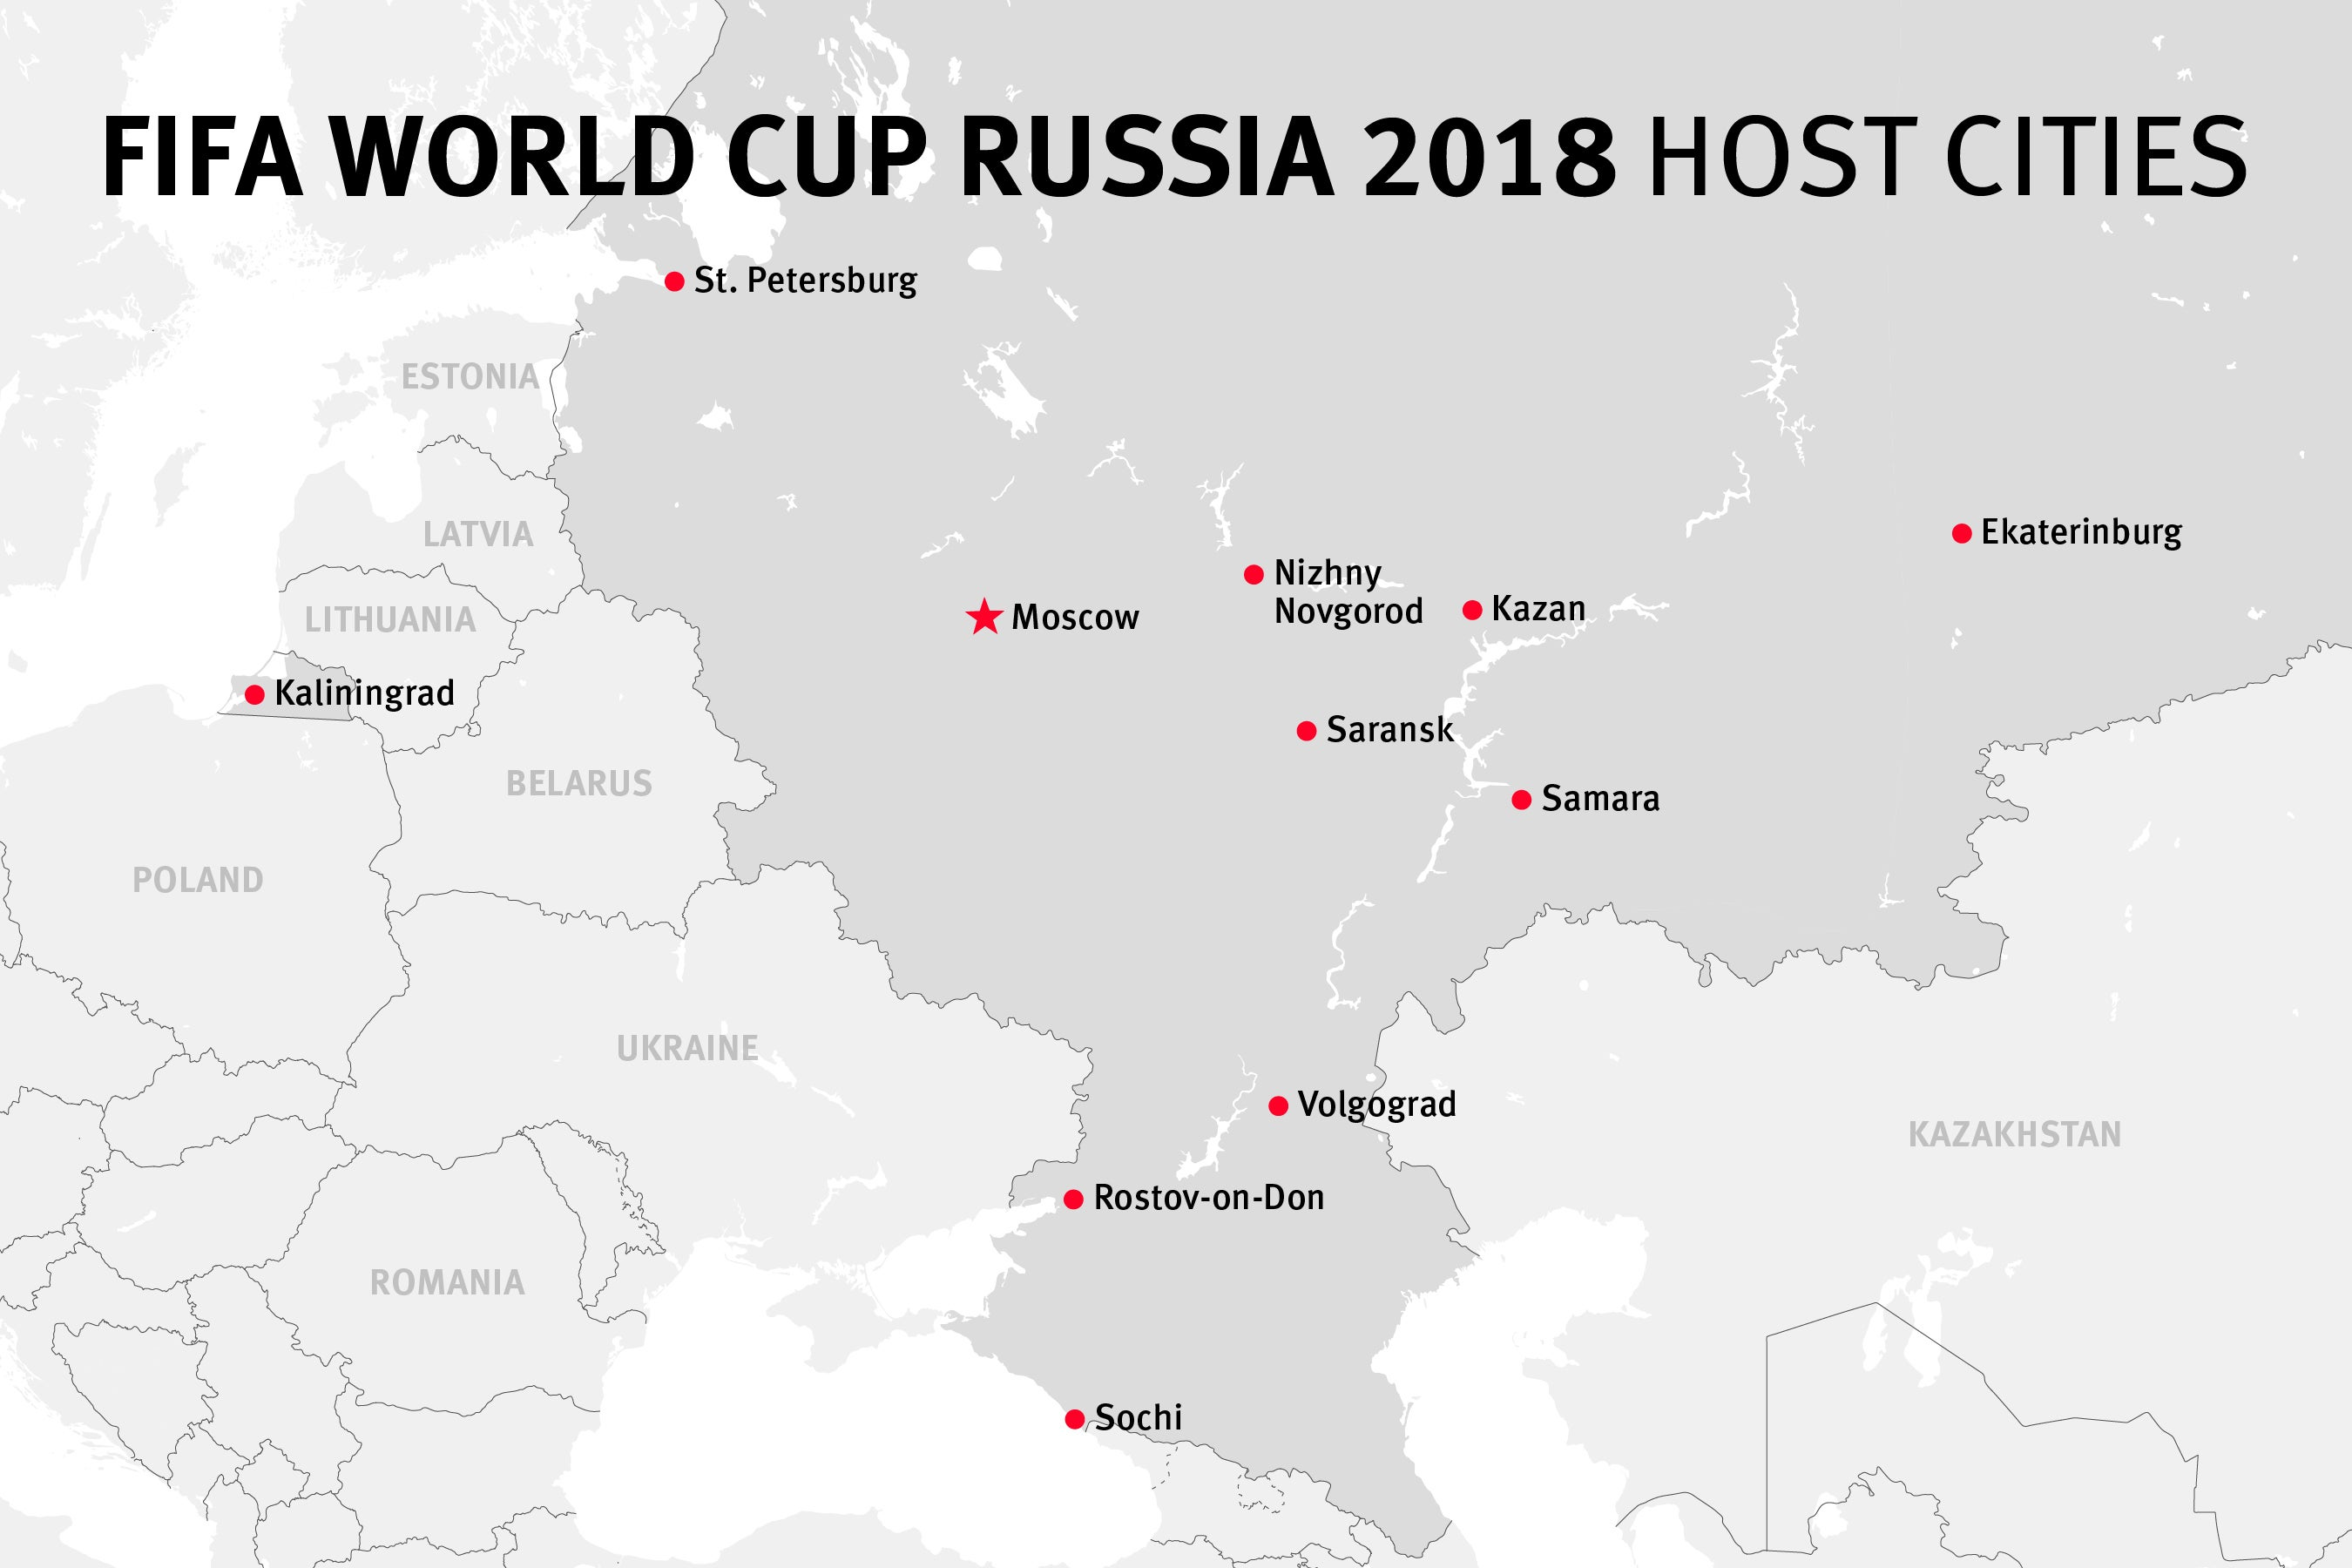 Map of the FIFA World Cup Russia 2018 host cities